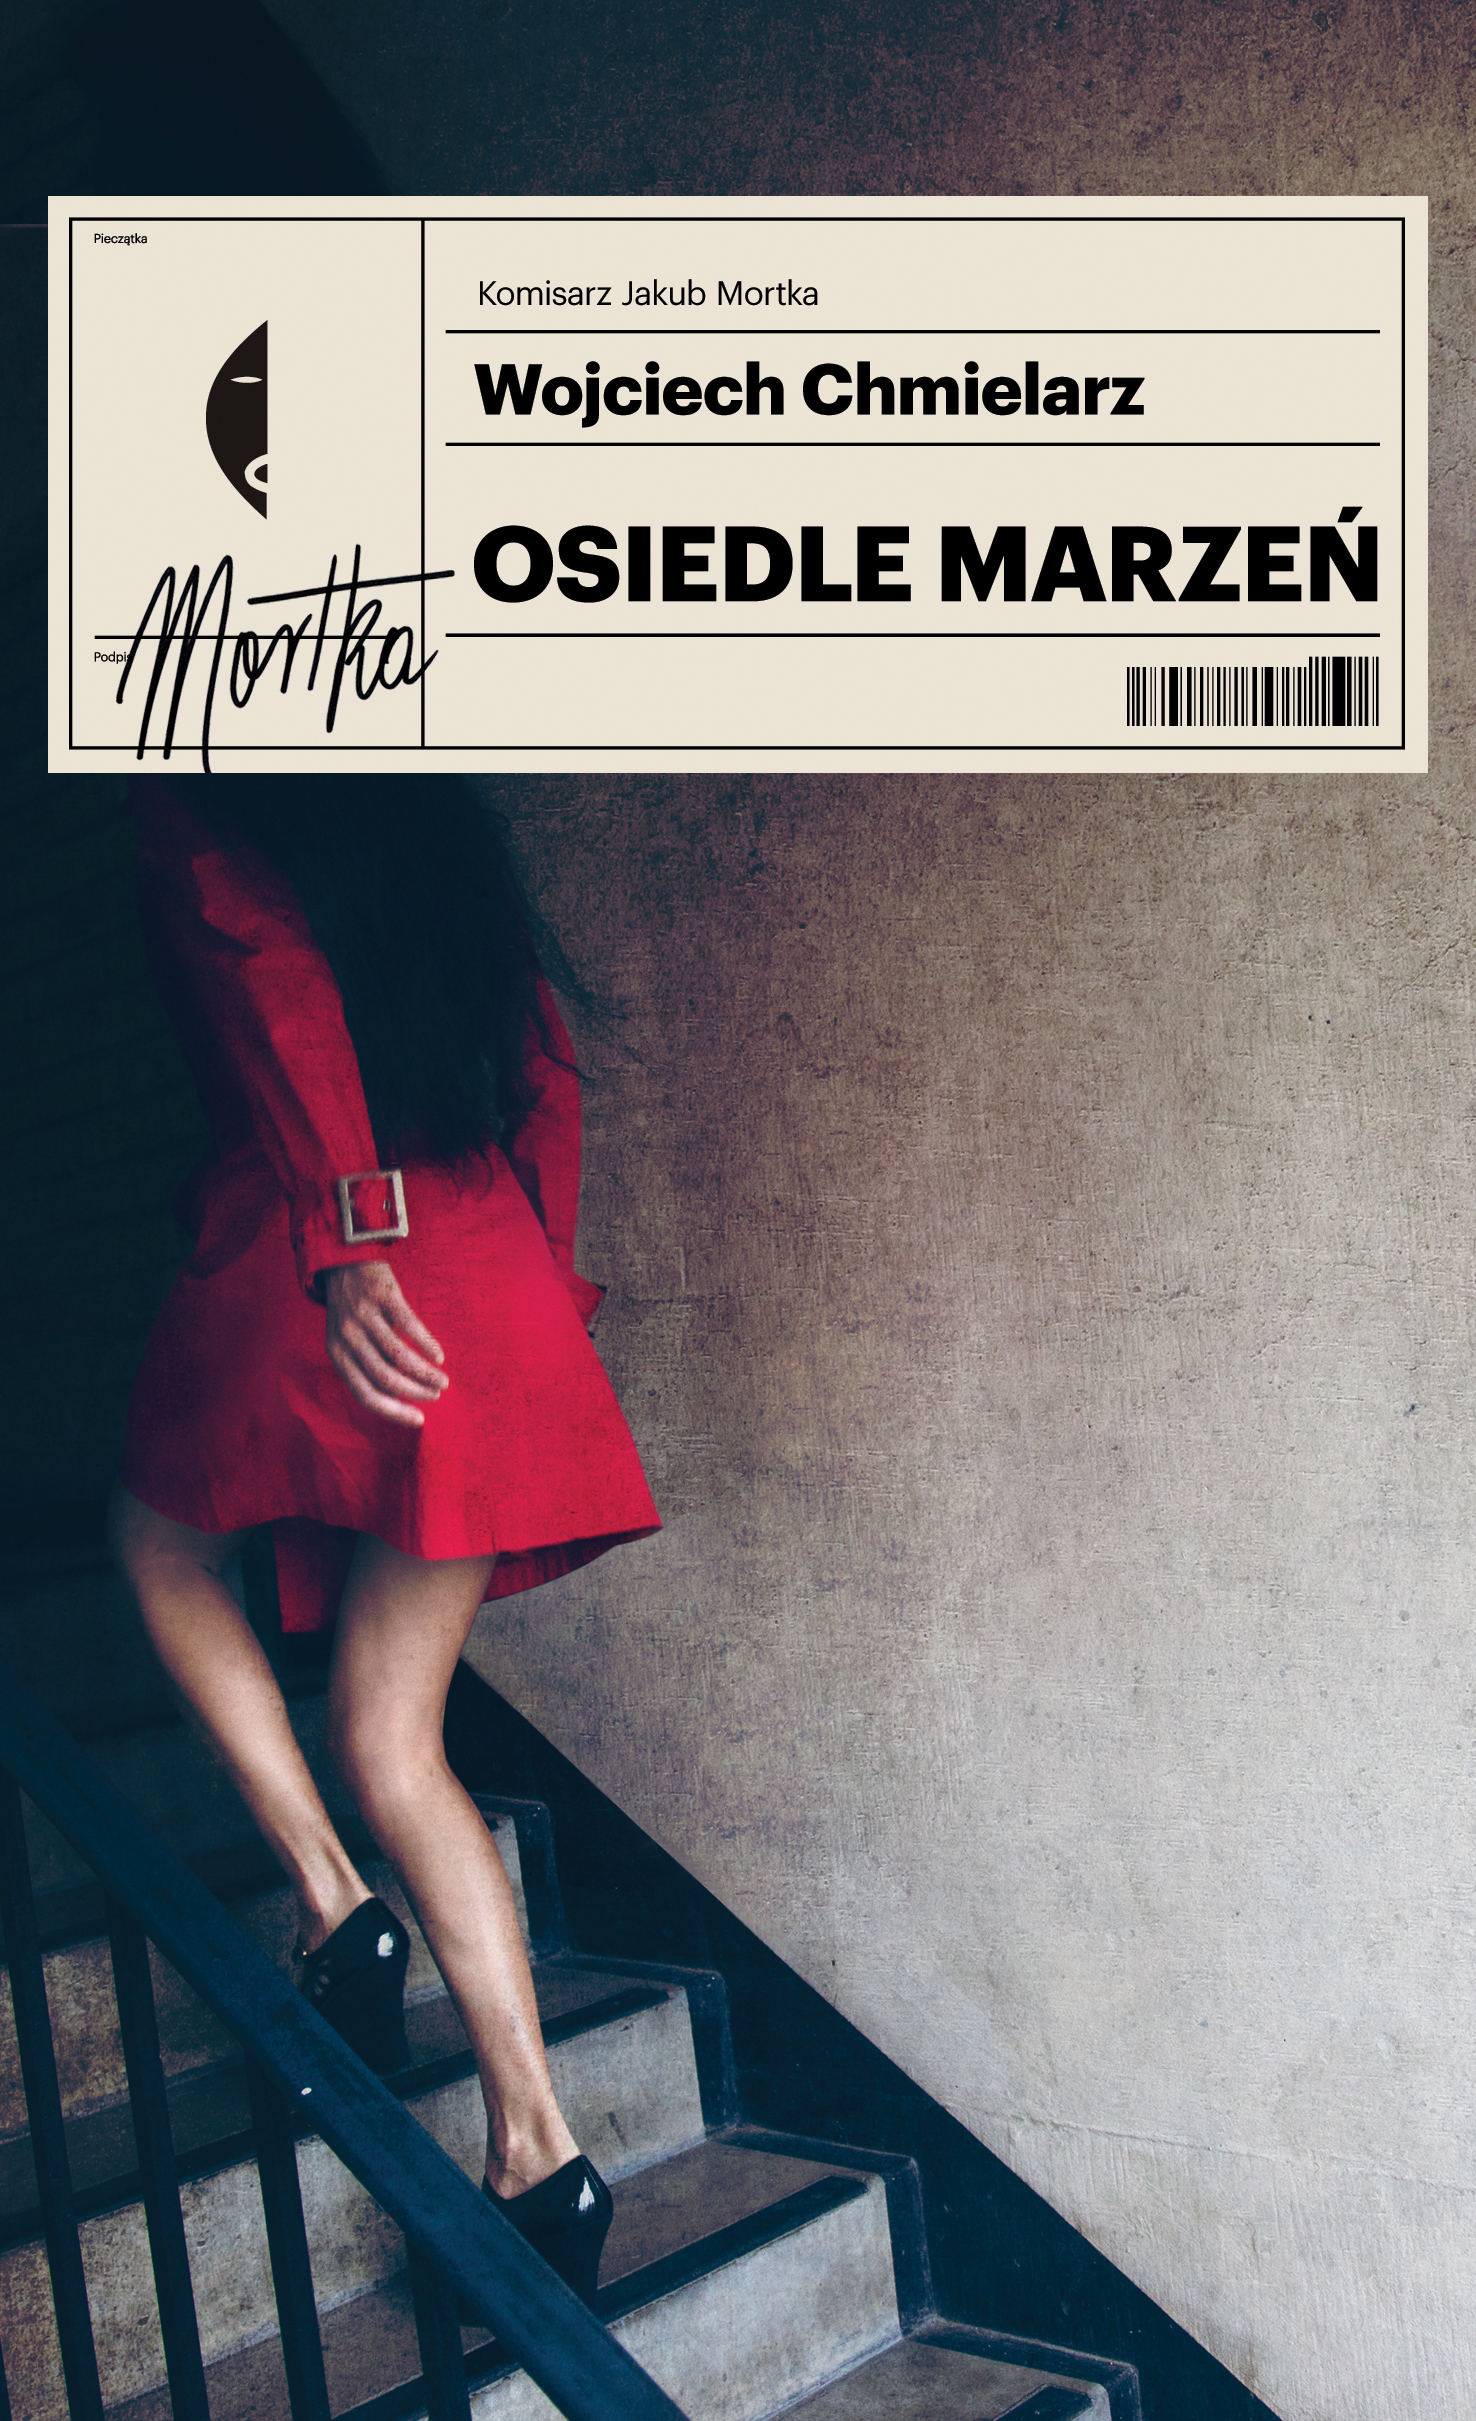 https://czarne.com.pl/uploads/catalog/product/cover/1040/osiedle_marzen.jpg